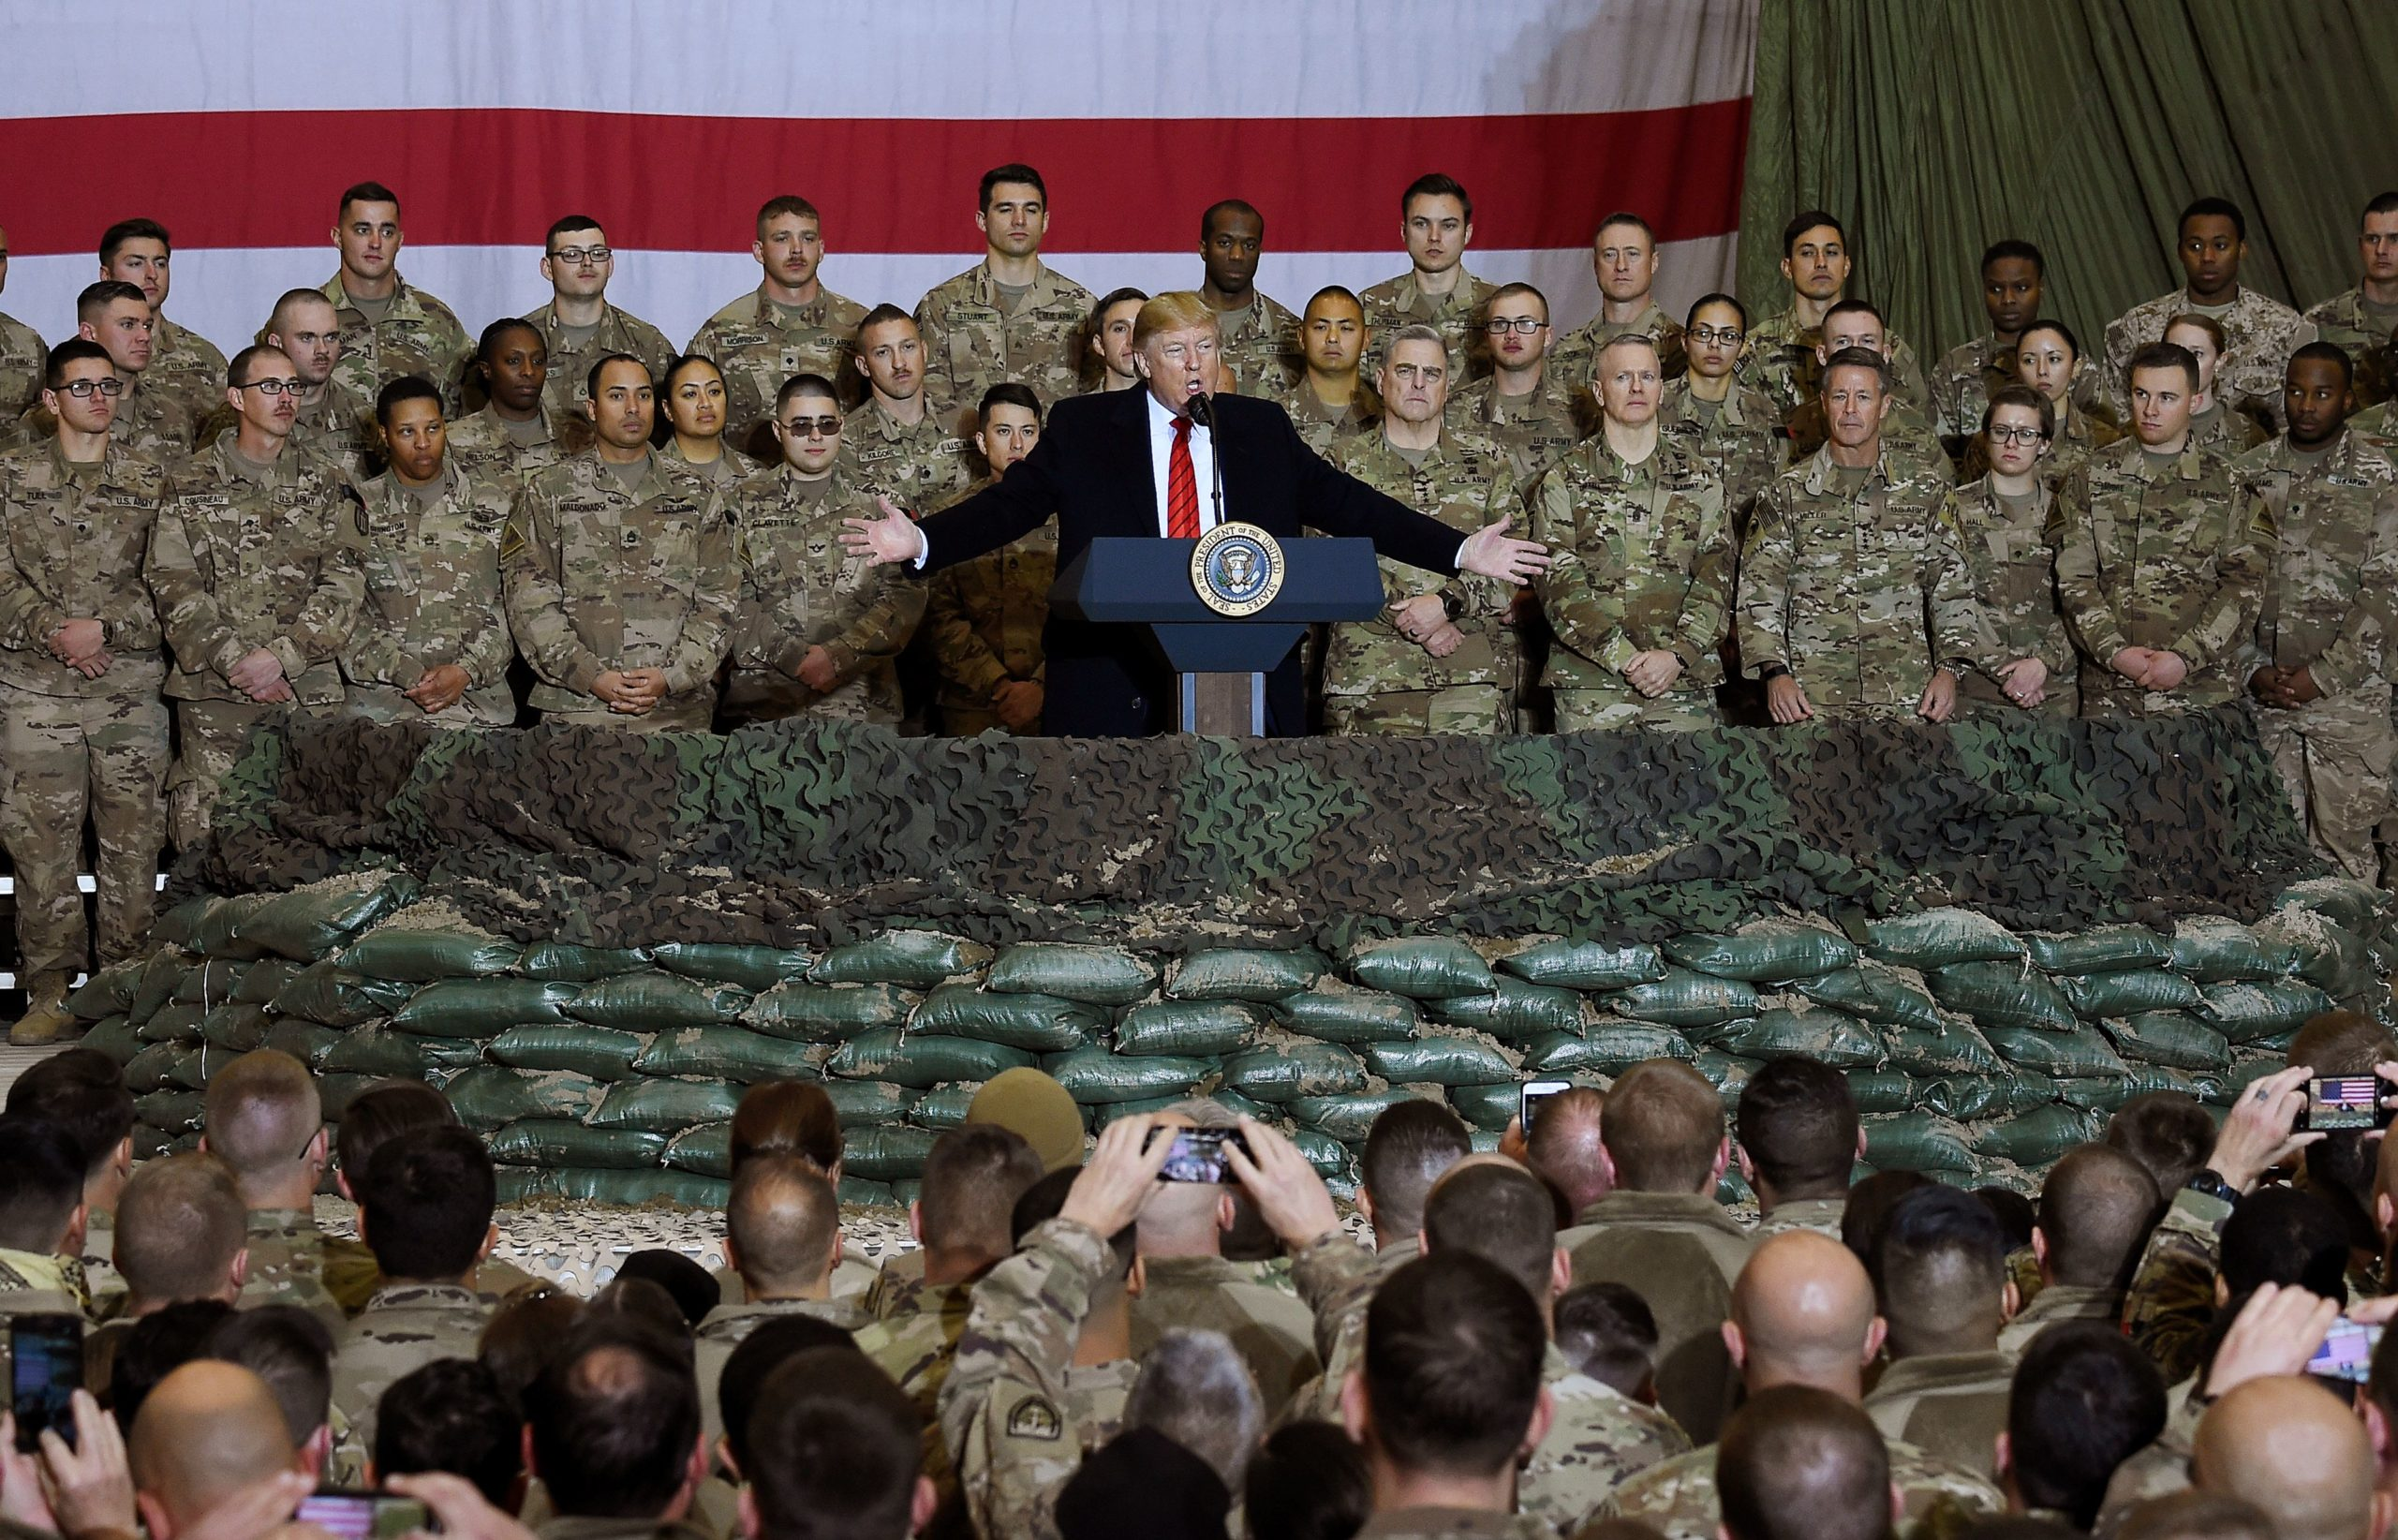 In this file photo taken on November 28, 2019, US President Donald Trump speaks to the troops during a surprise Thanksgiving day visit at Bagram Air Field in Afghanistan. (Olivier Douliery/AFP via Getty Images)